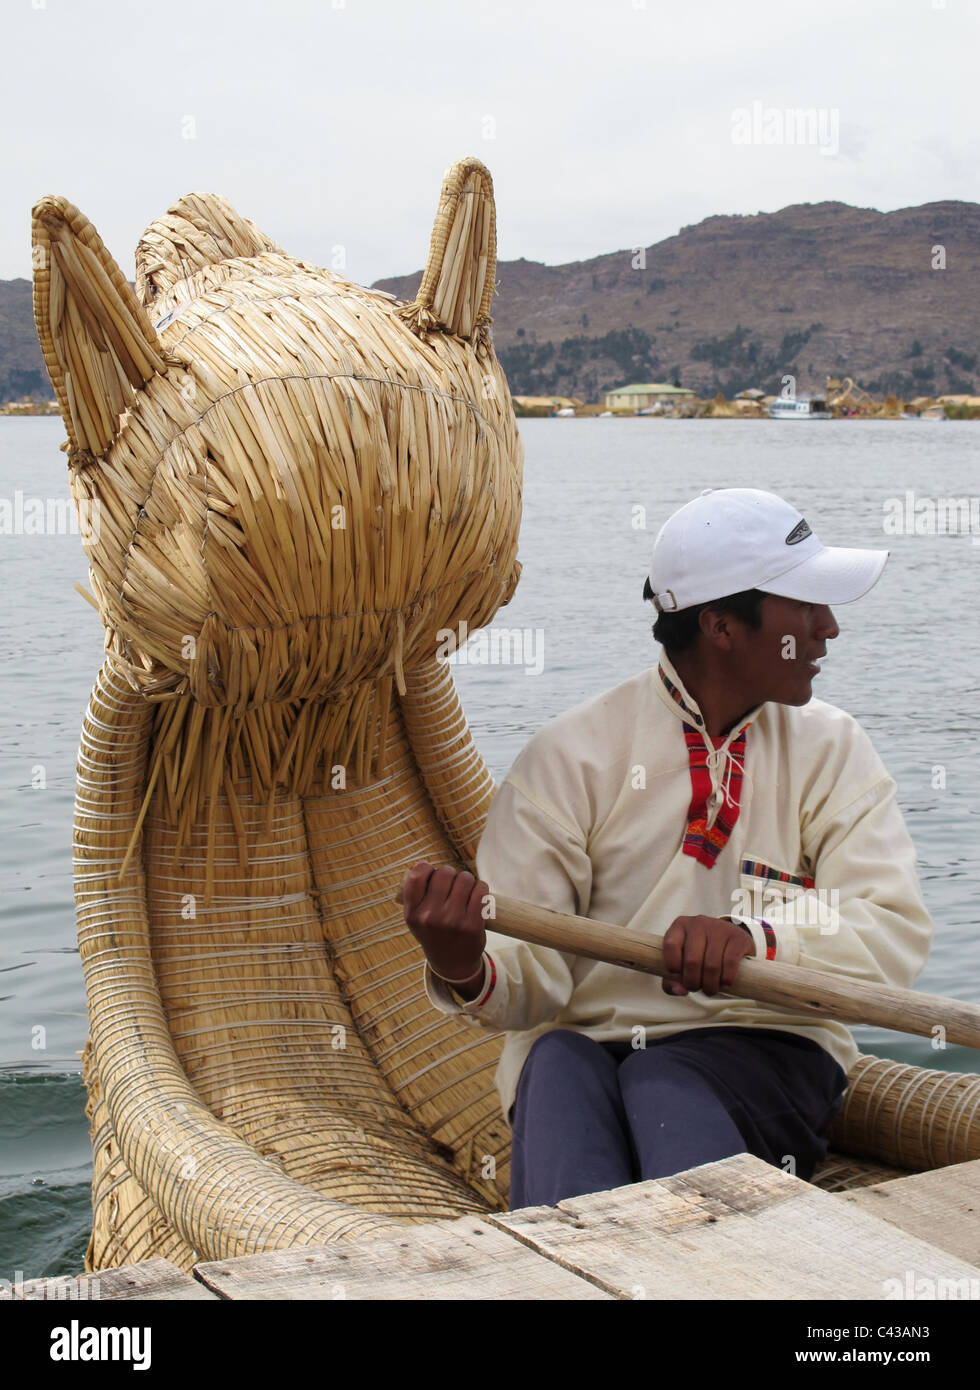 Uro man rowing his reed boat with dragon head for guests, lake titicaca, Peru - Stock Image